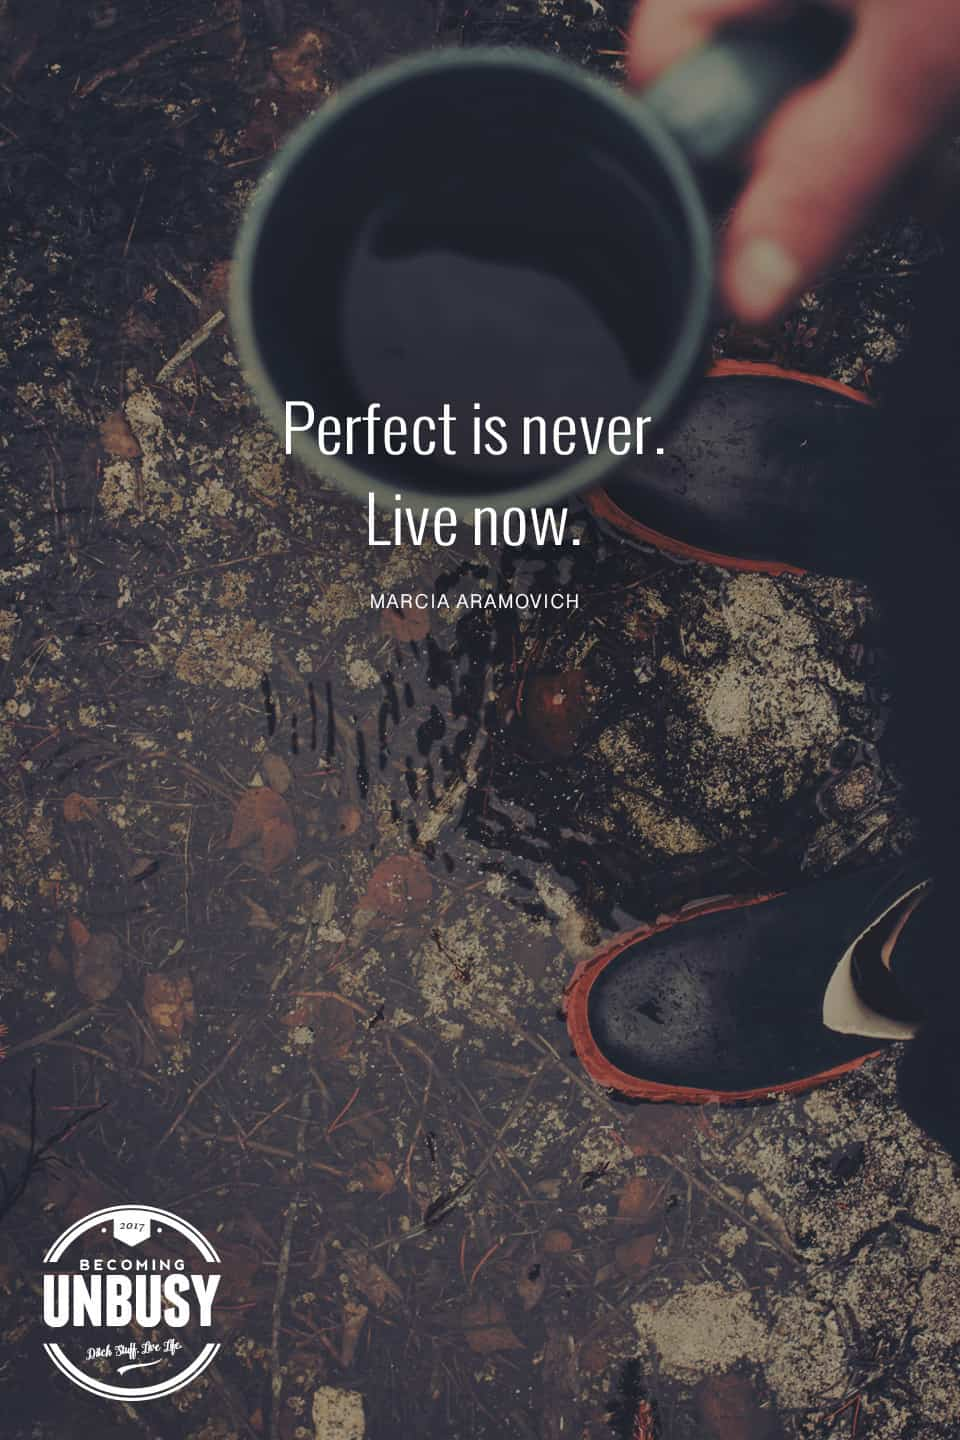 10 Good Morning Quotes - Perfect is never. Live now. #lifequotes #quotes #goodmorningquotes #coffeequotes *Start the day off right with these morning inspirational quotes. Love this good morning motivation!